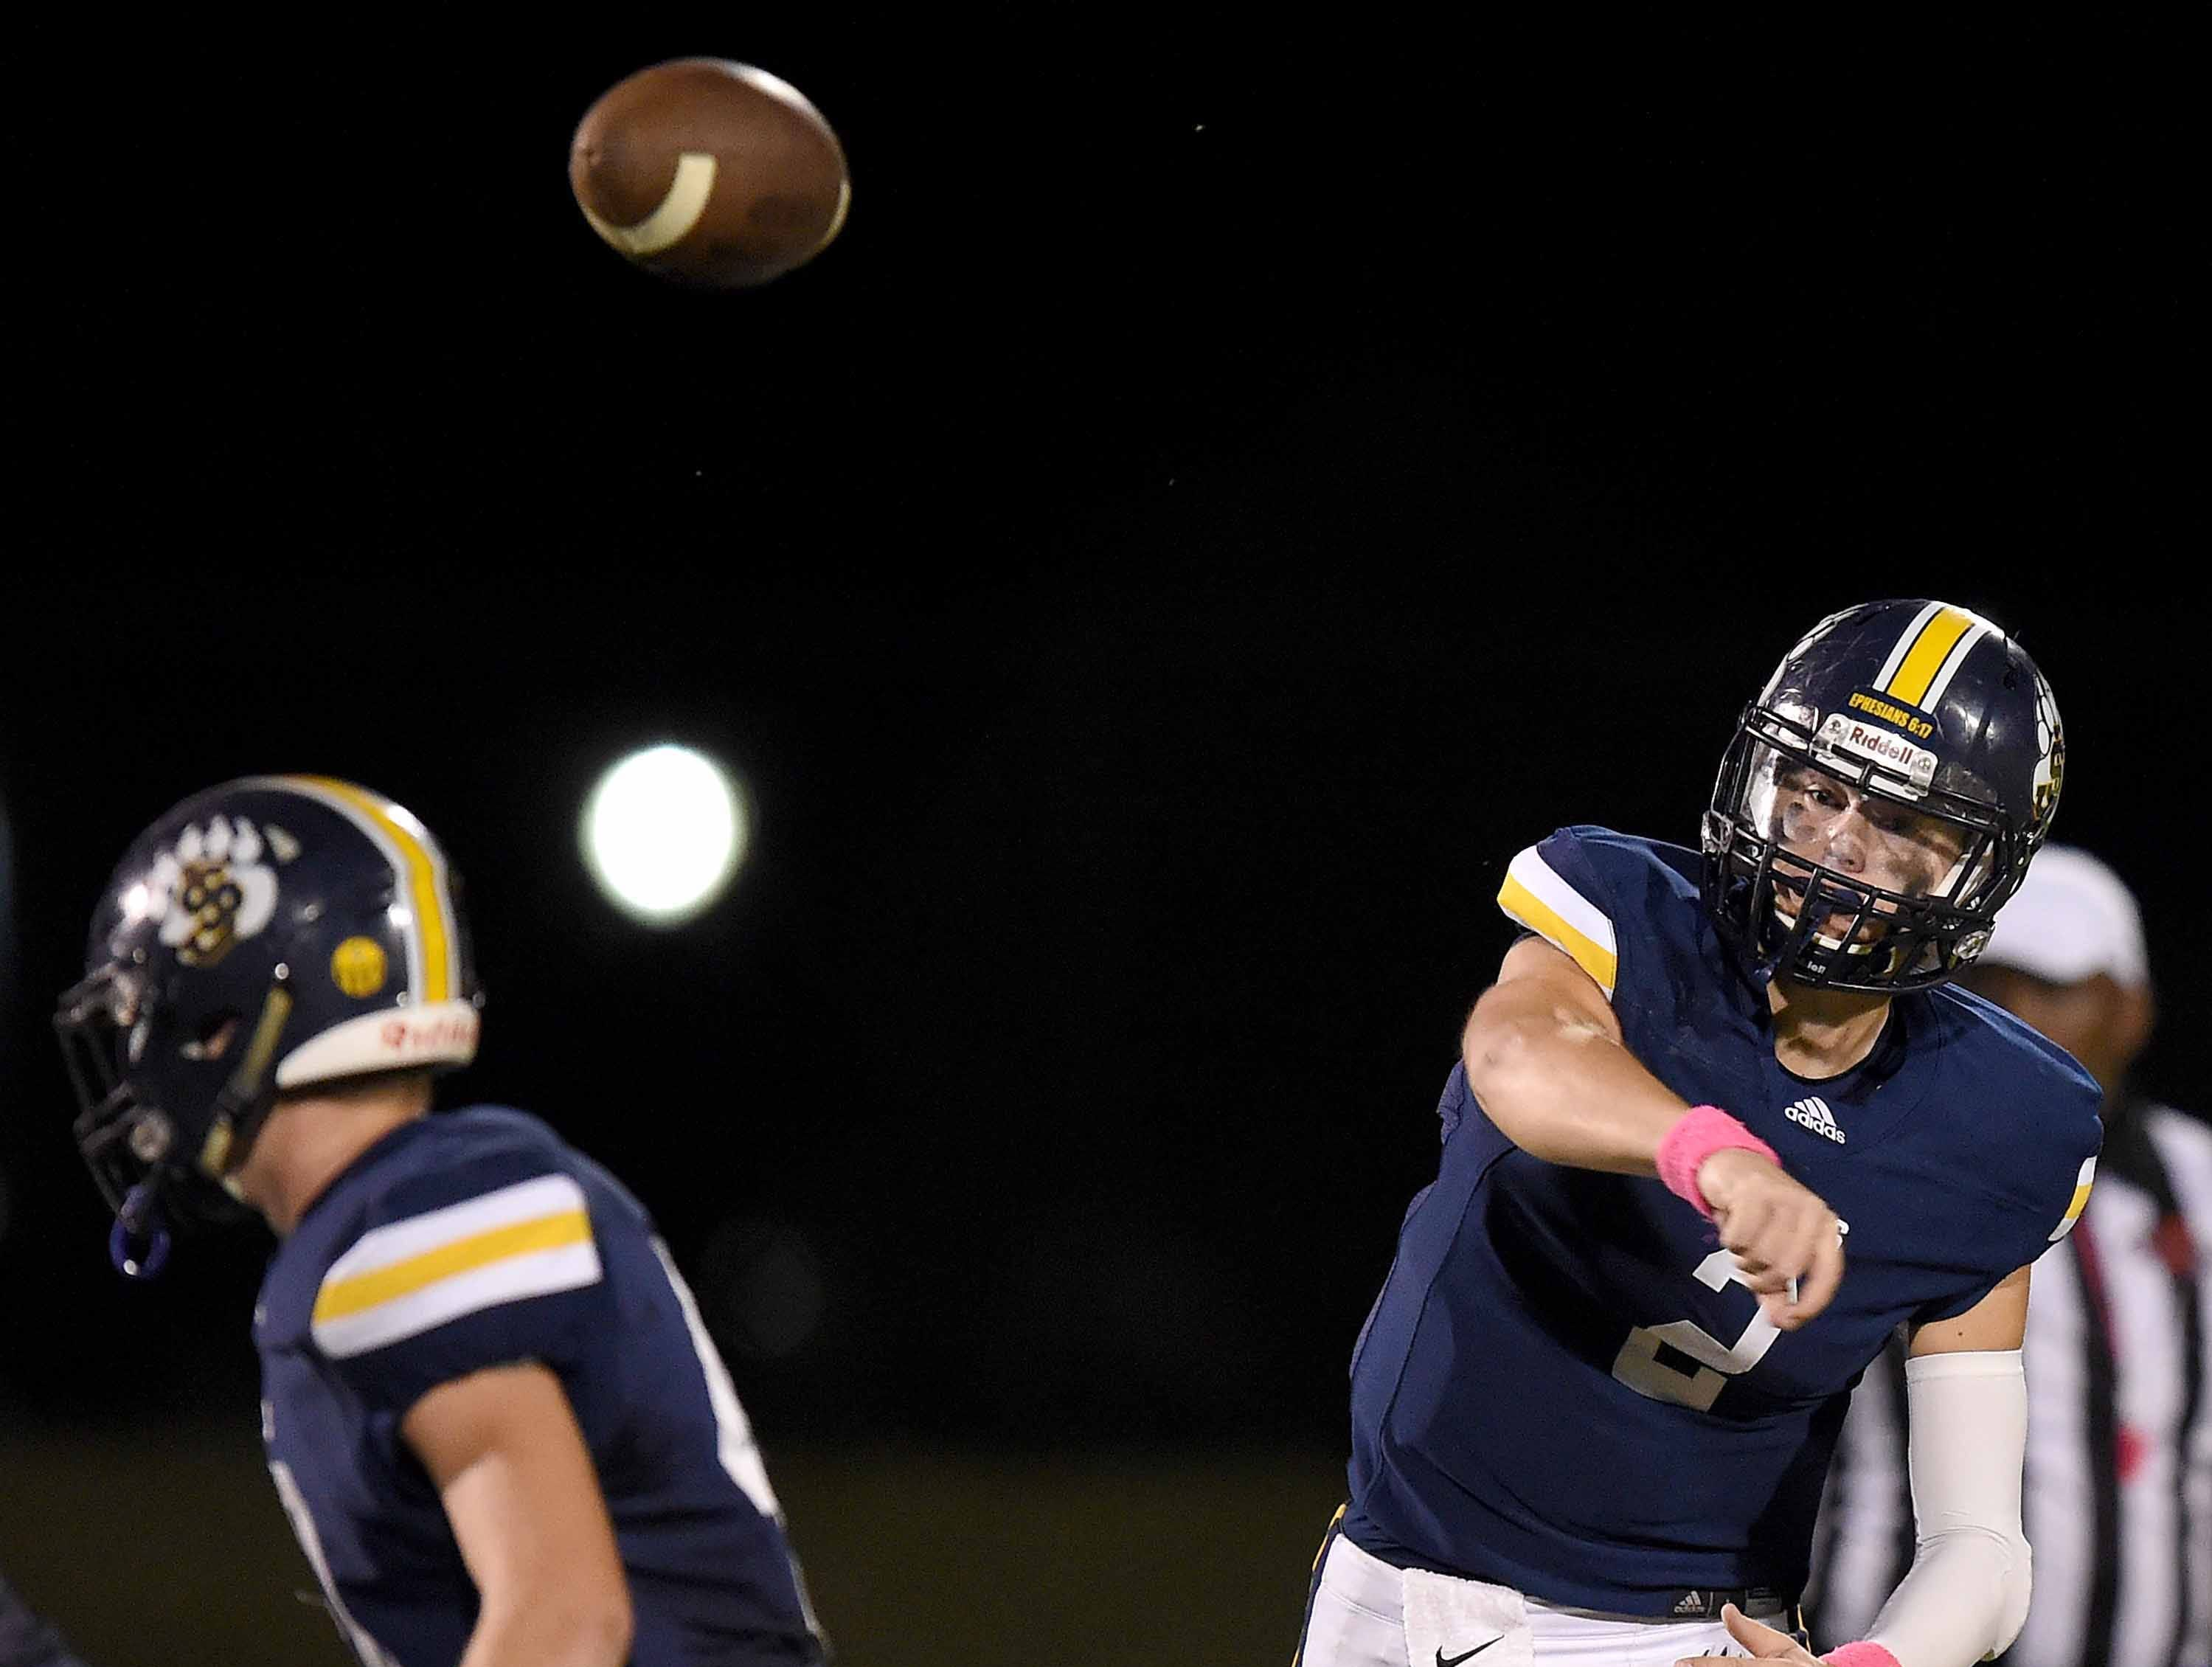 St. Joseph quarterback Daniel Clarke (2) throws over the middle against Puckett on Friday, October 19, 2018, at St. Joseph Catholic School in Madison, Miss.